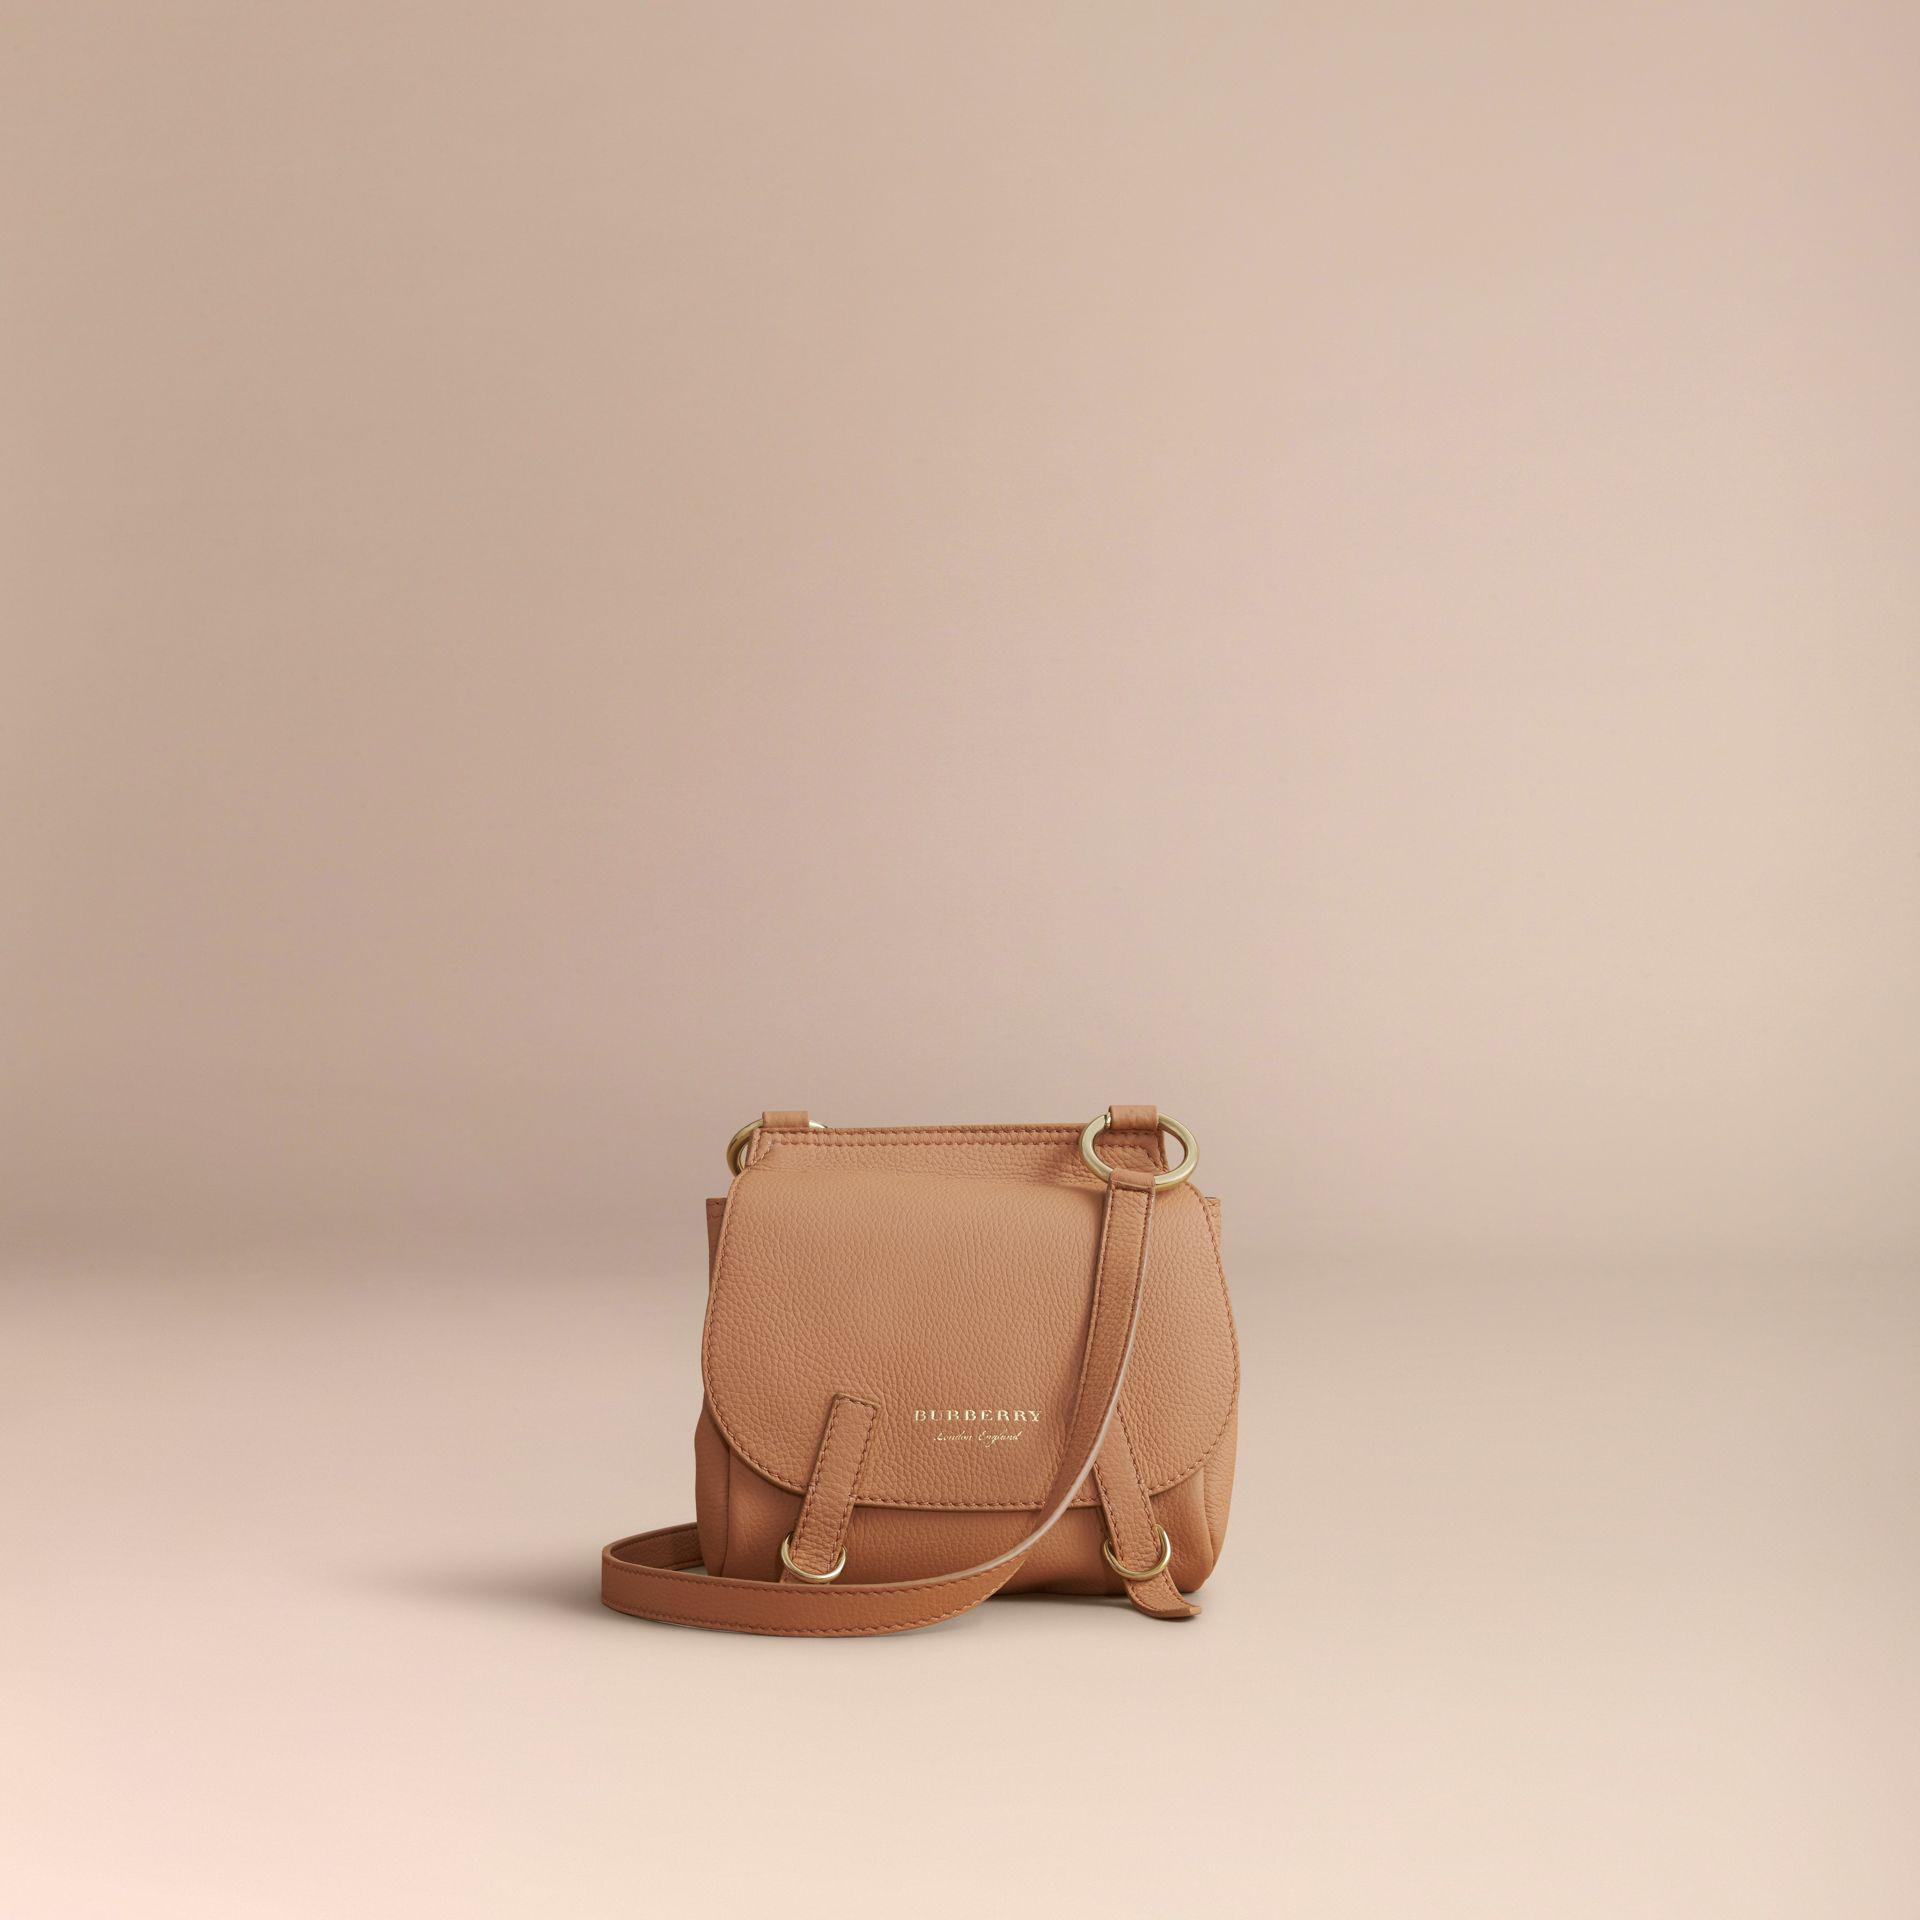 Burberry Leather The Bridle Crossbody Bag In Deerskin Pale Clementine in Brown